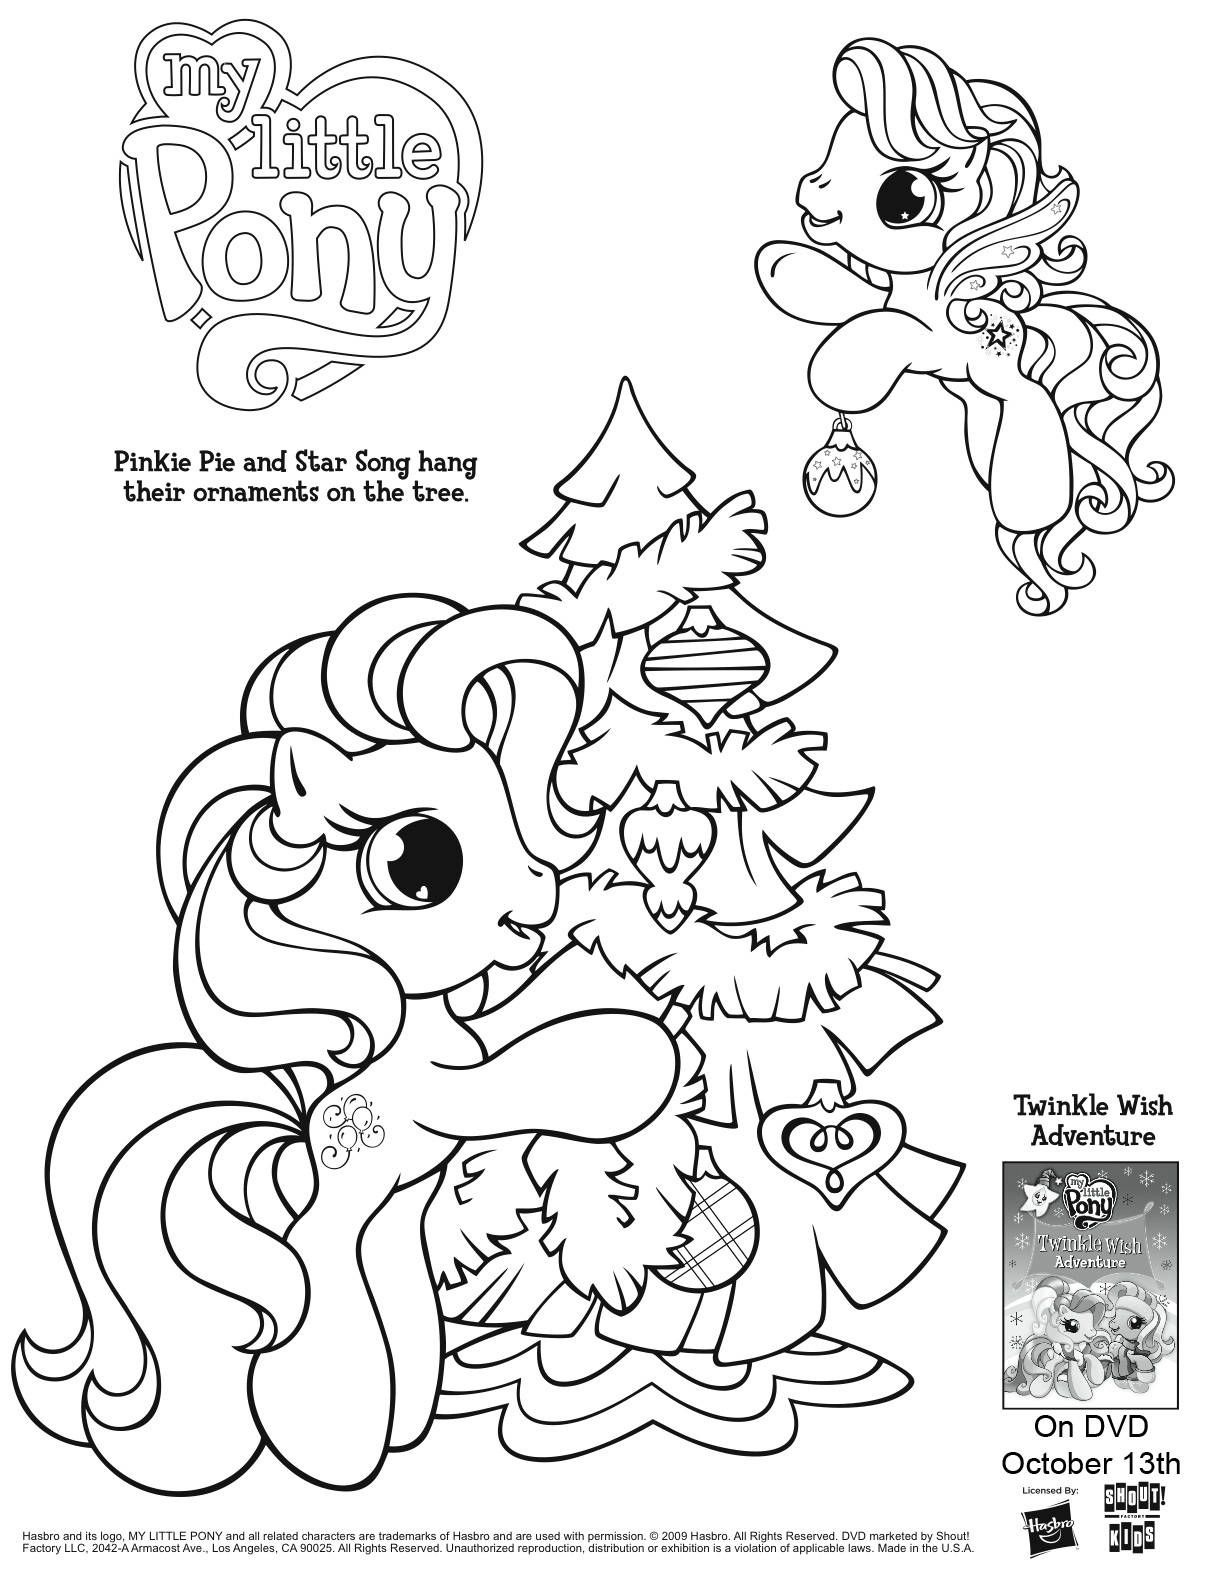 My Little Pony Coloring Page | Preschool | Christmas Coloring Pages - Free Printable Coloring Pages For 2 Year Olds